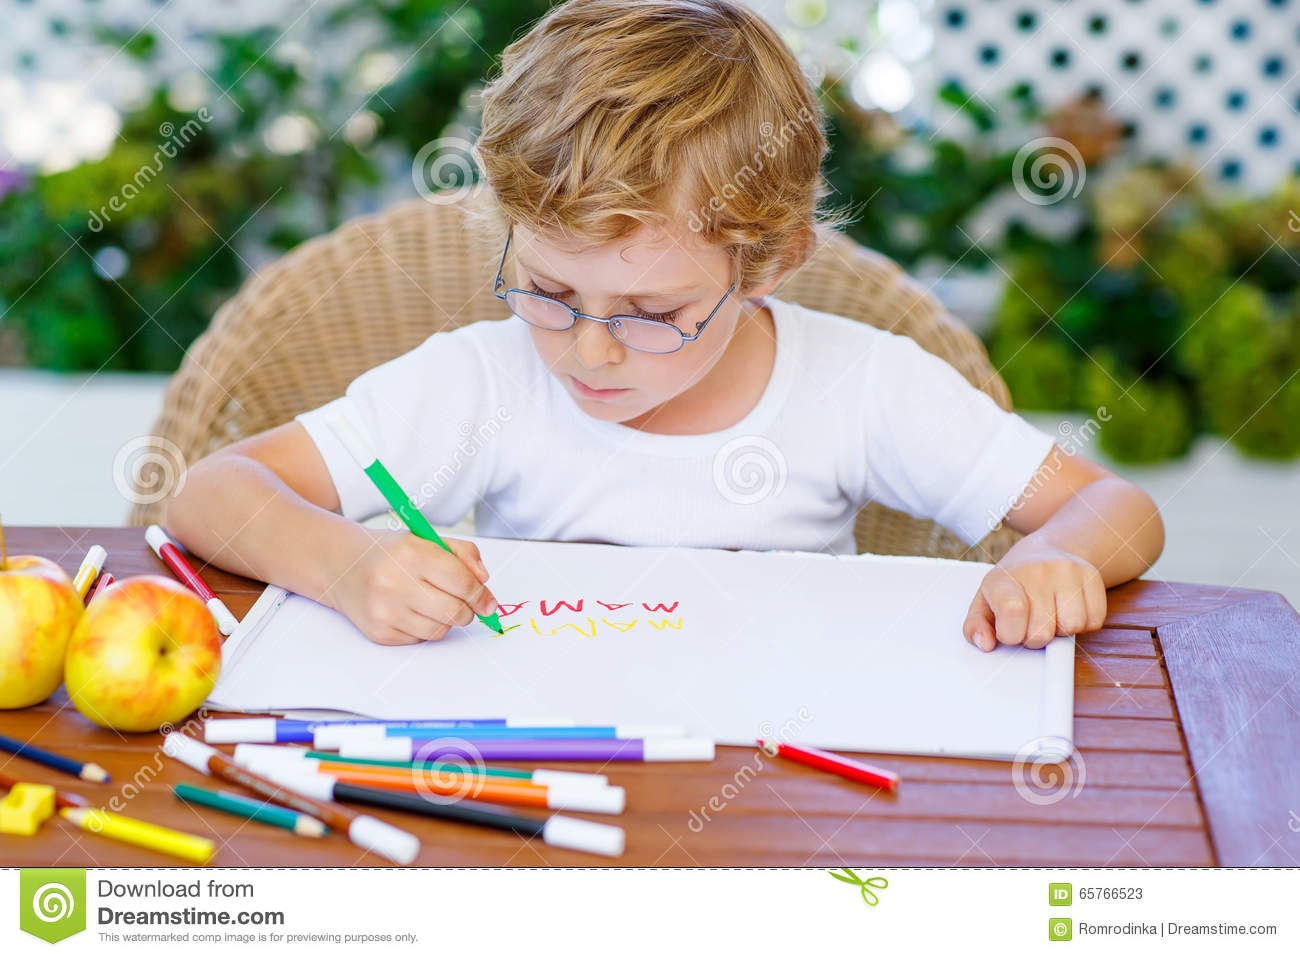 a4de8067a21 Portrait of cute happy preschool kid boy with glasses at home making  homework. Little child painting with colorful pencils